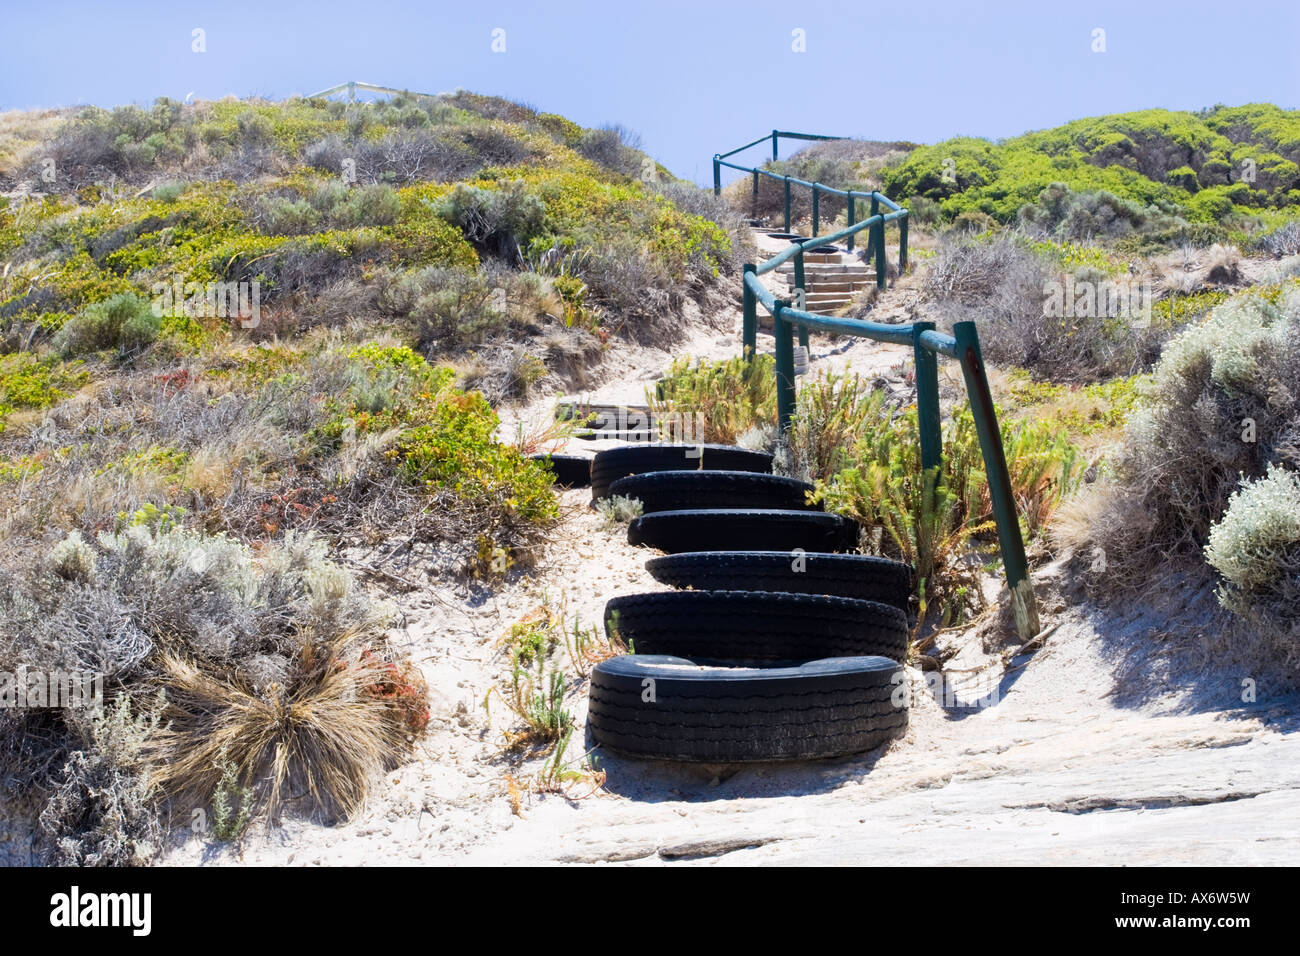 Steps made from old tyres protecting sand dunes from erosion at Observatory Beach in Esperance, Western Australia - Stock Image